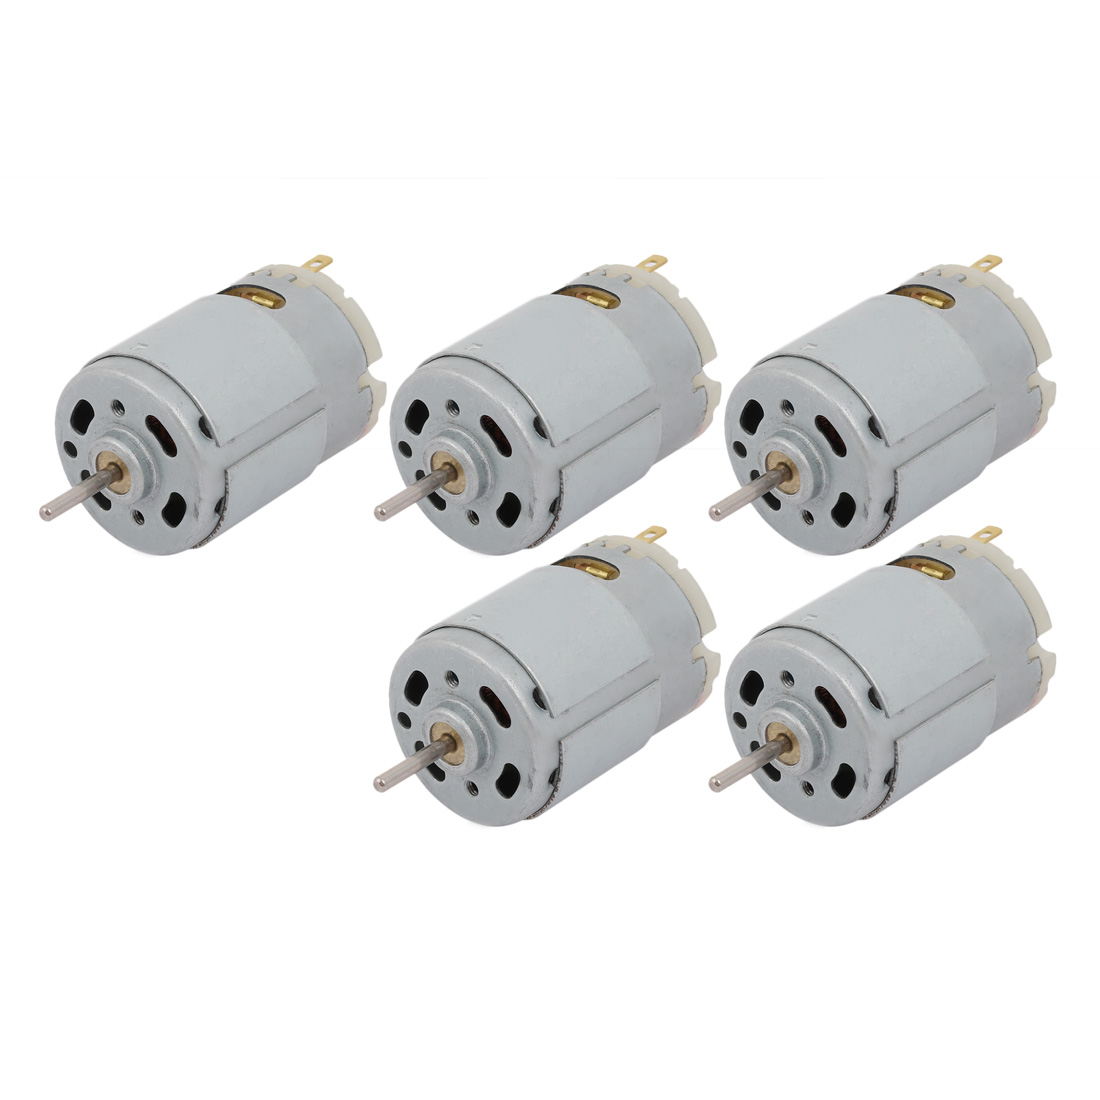 5pcs DC36V 36000RPM Cylinder Magnetic Electric Micro DC Motor R380 for RC Plane